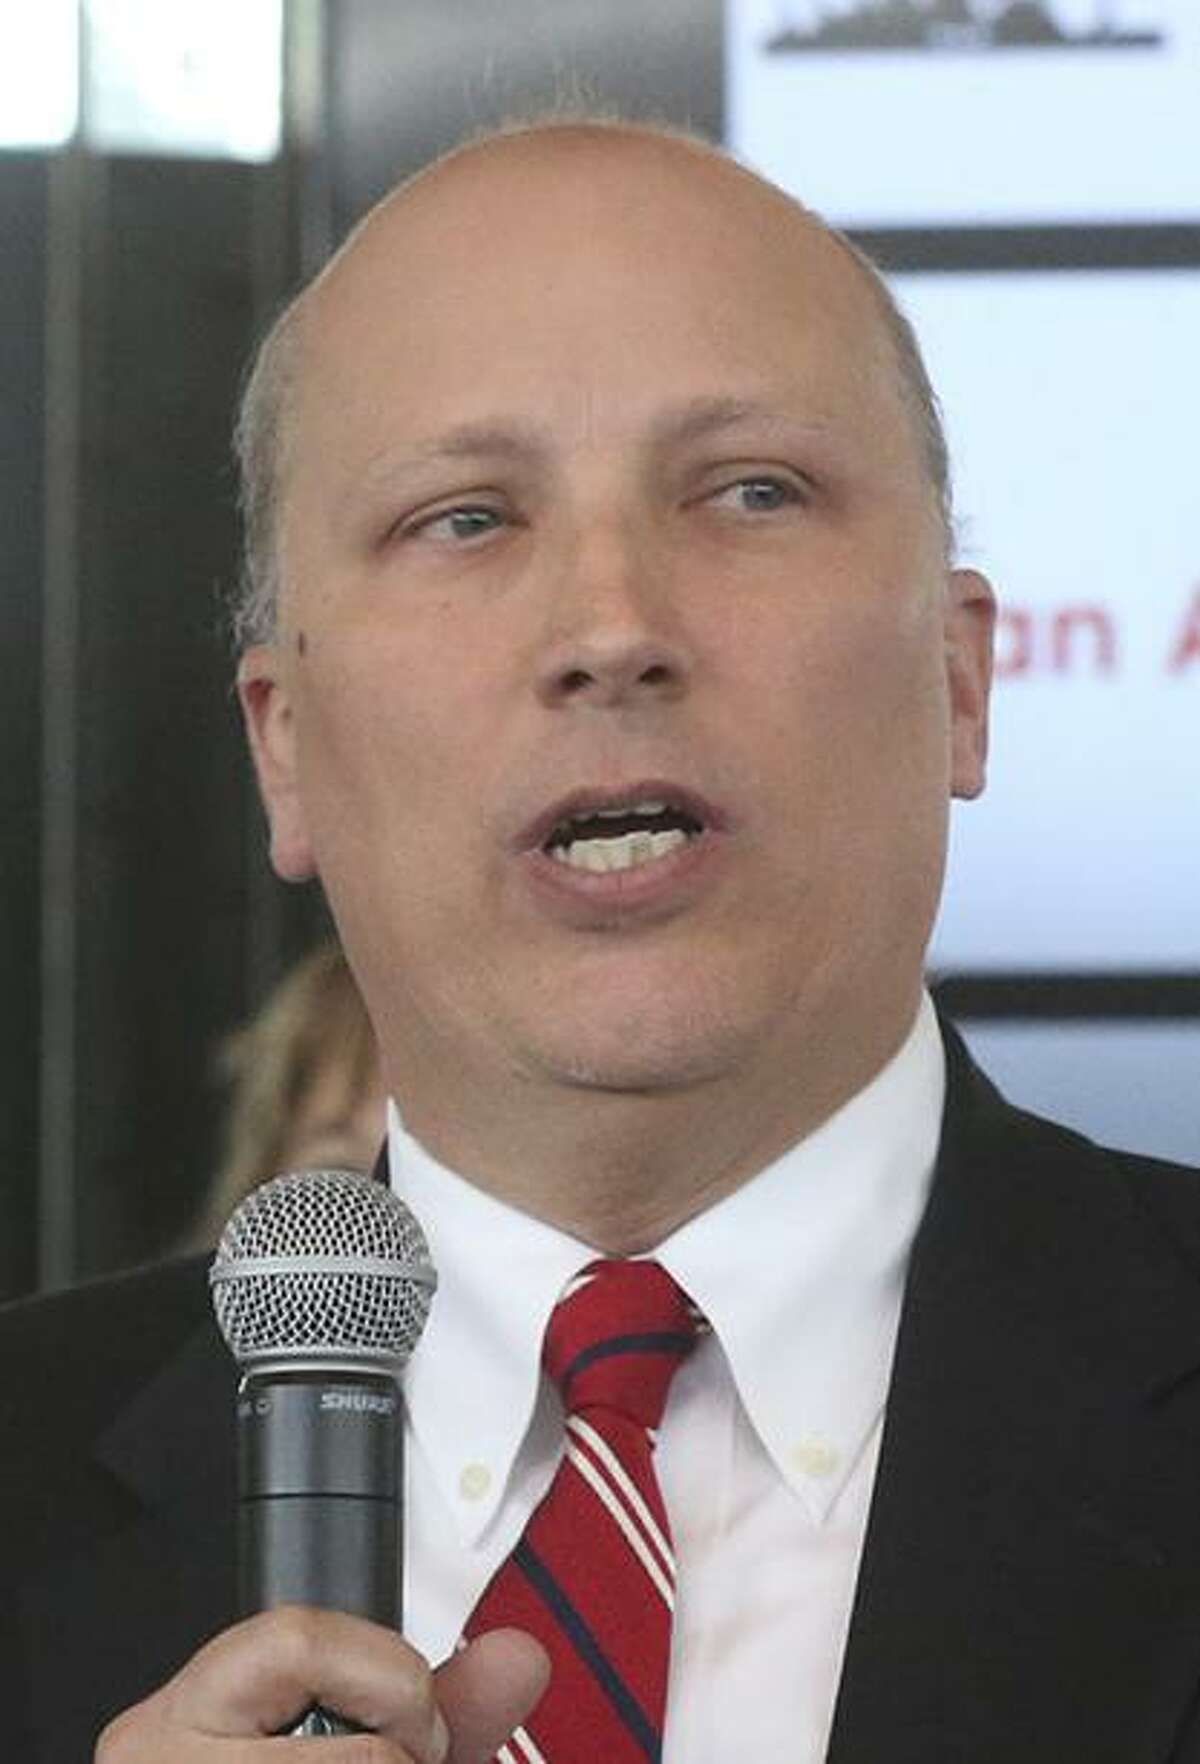 Congressional District 21 candidate Chip Roy (foreground, holding microphone) speaks Thursday January 11, 2018 at the Old San Francisco Steakhouse during a forum held during a meeting of the San Antonio Republican Women. The forum introduced 15 candidates running for the seat held in Congressional District 21 held by Representative Lamar Smith.